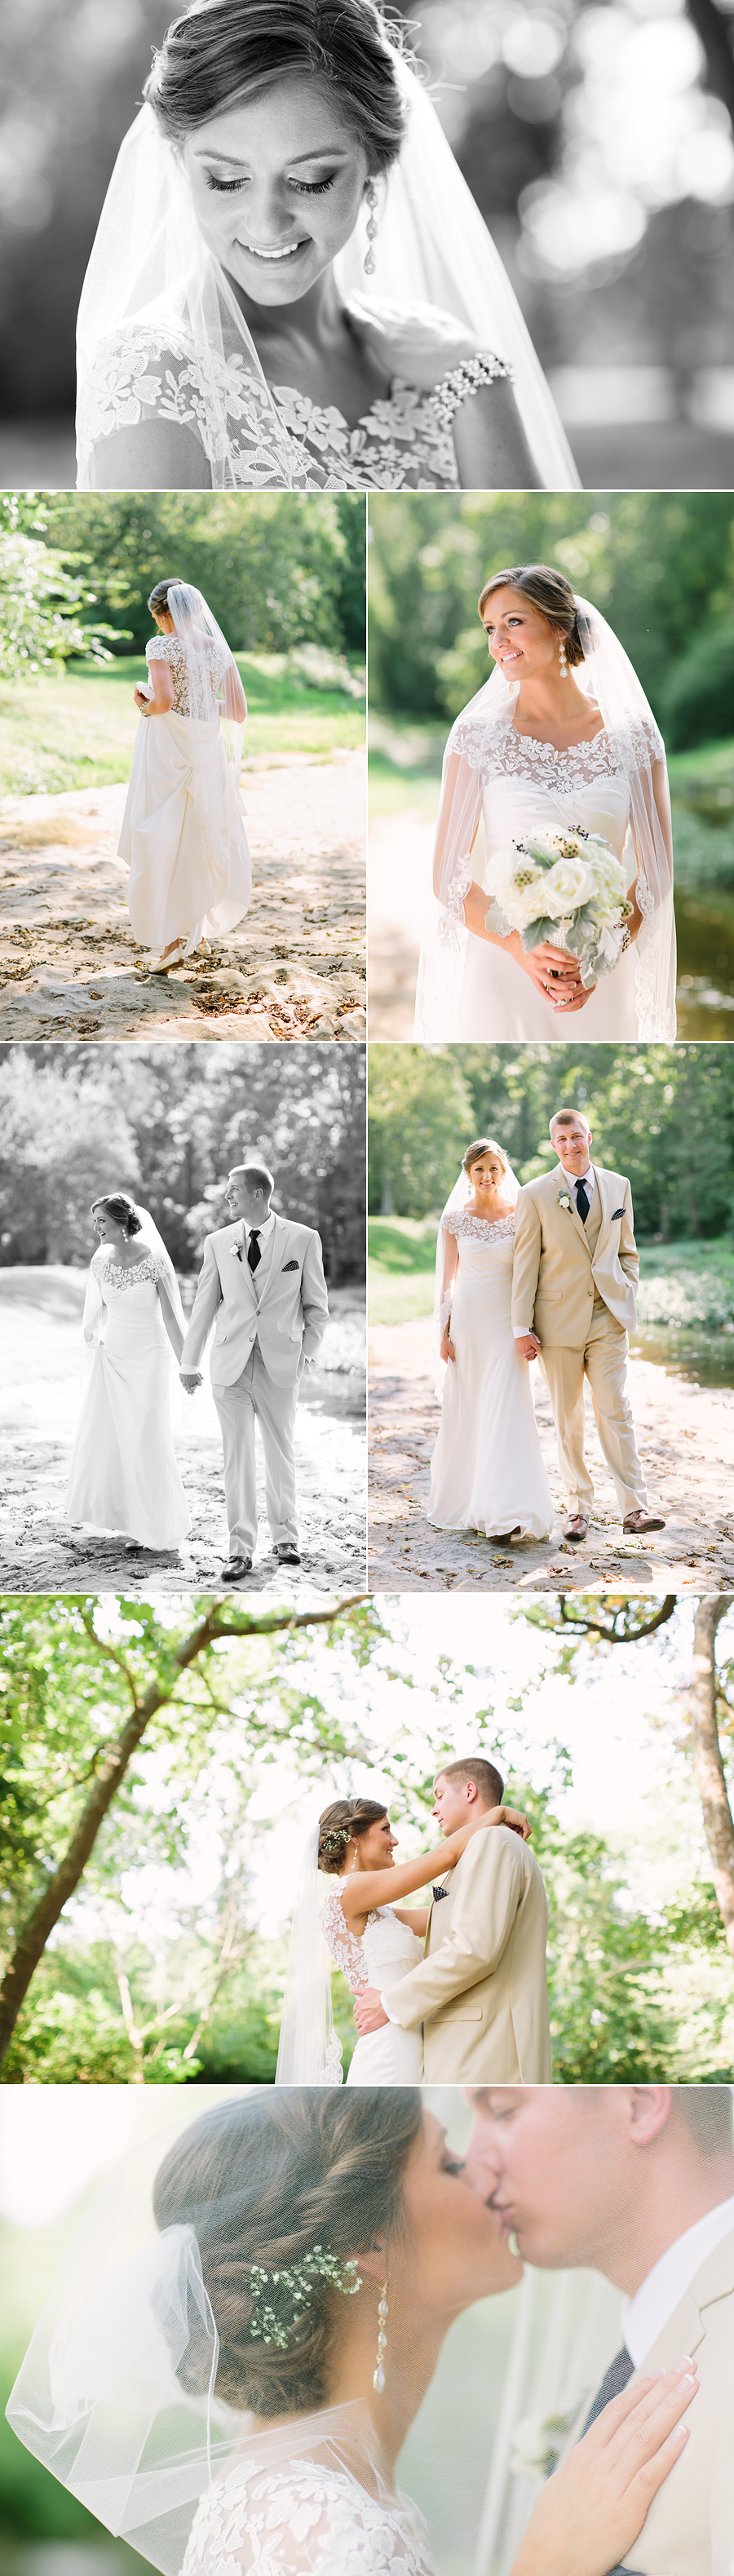 Belle_Meade_Plantation_Wedding_3